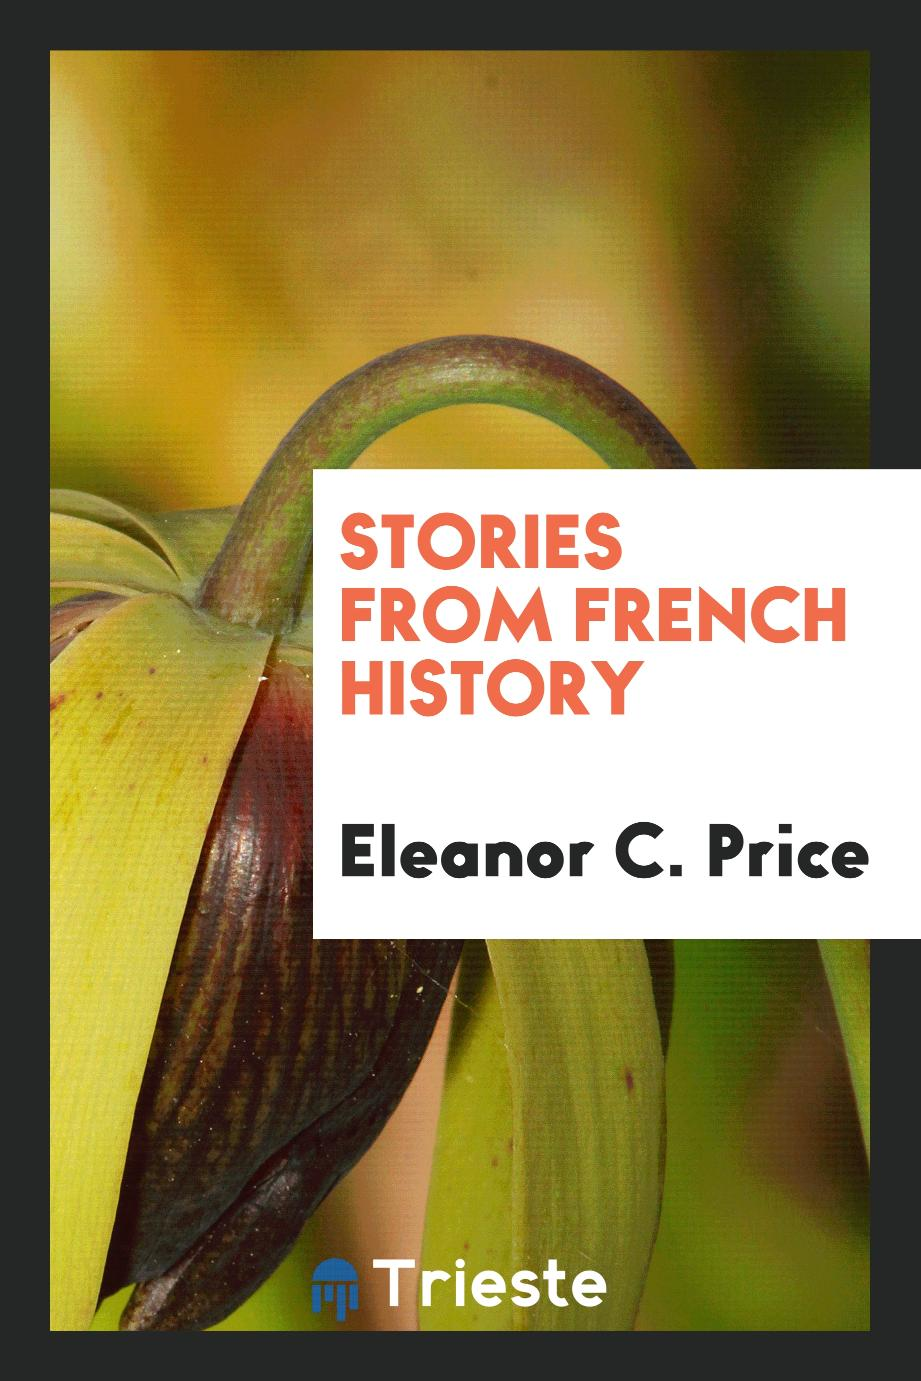 Stories from French history